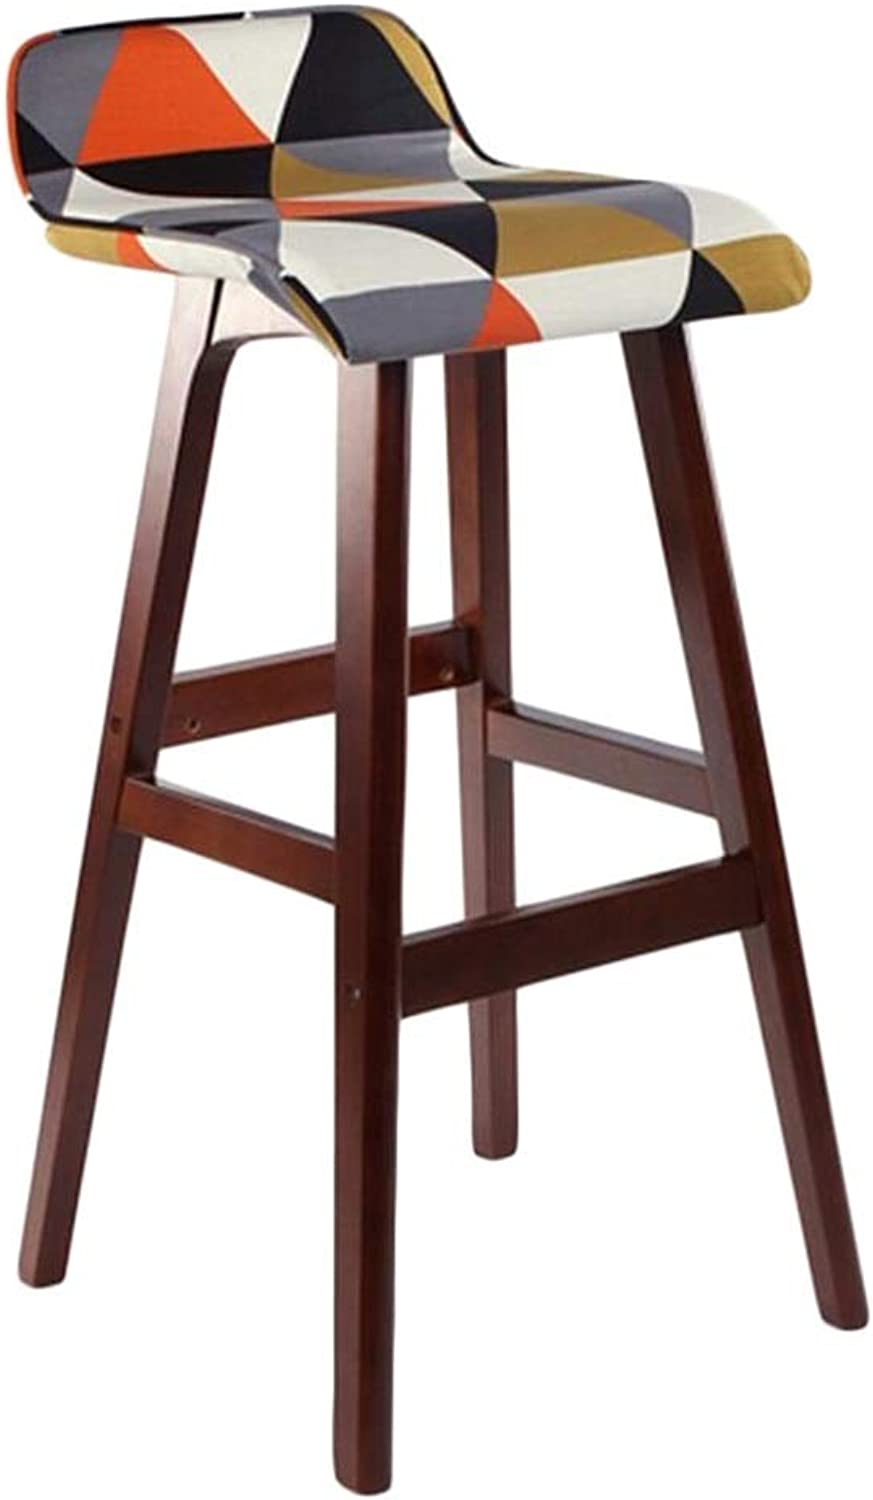 BARSTOOLRI Bar Stool with Backrest, Solid Wood Frame Non-Slip Ergonomic Removable Cushion Cover High Chair for Living Room Kitchen Office Garden (Size   Short)